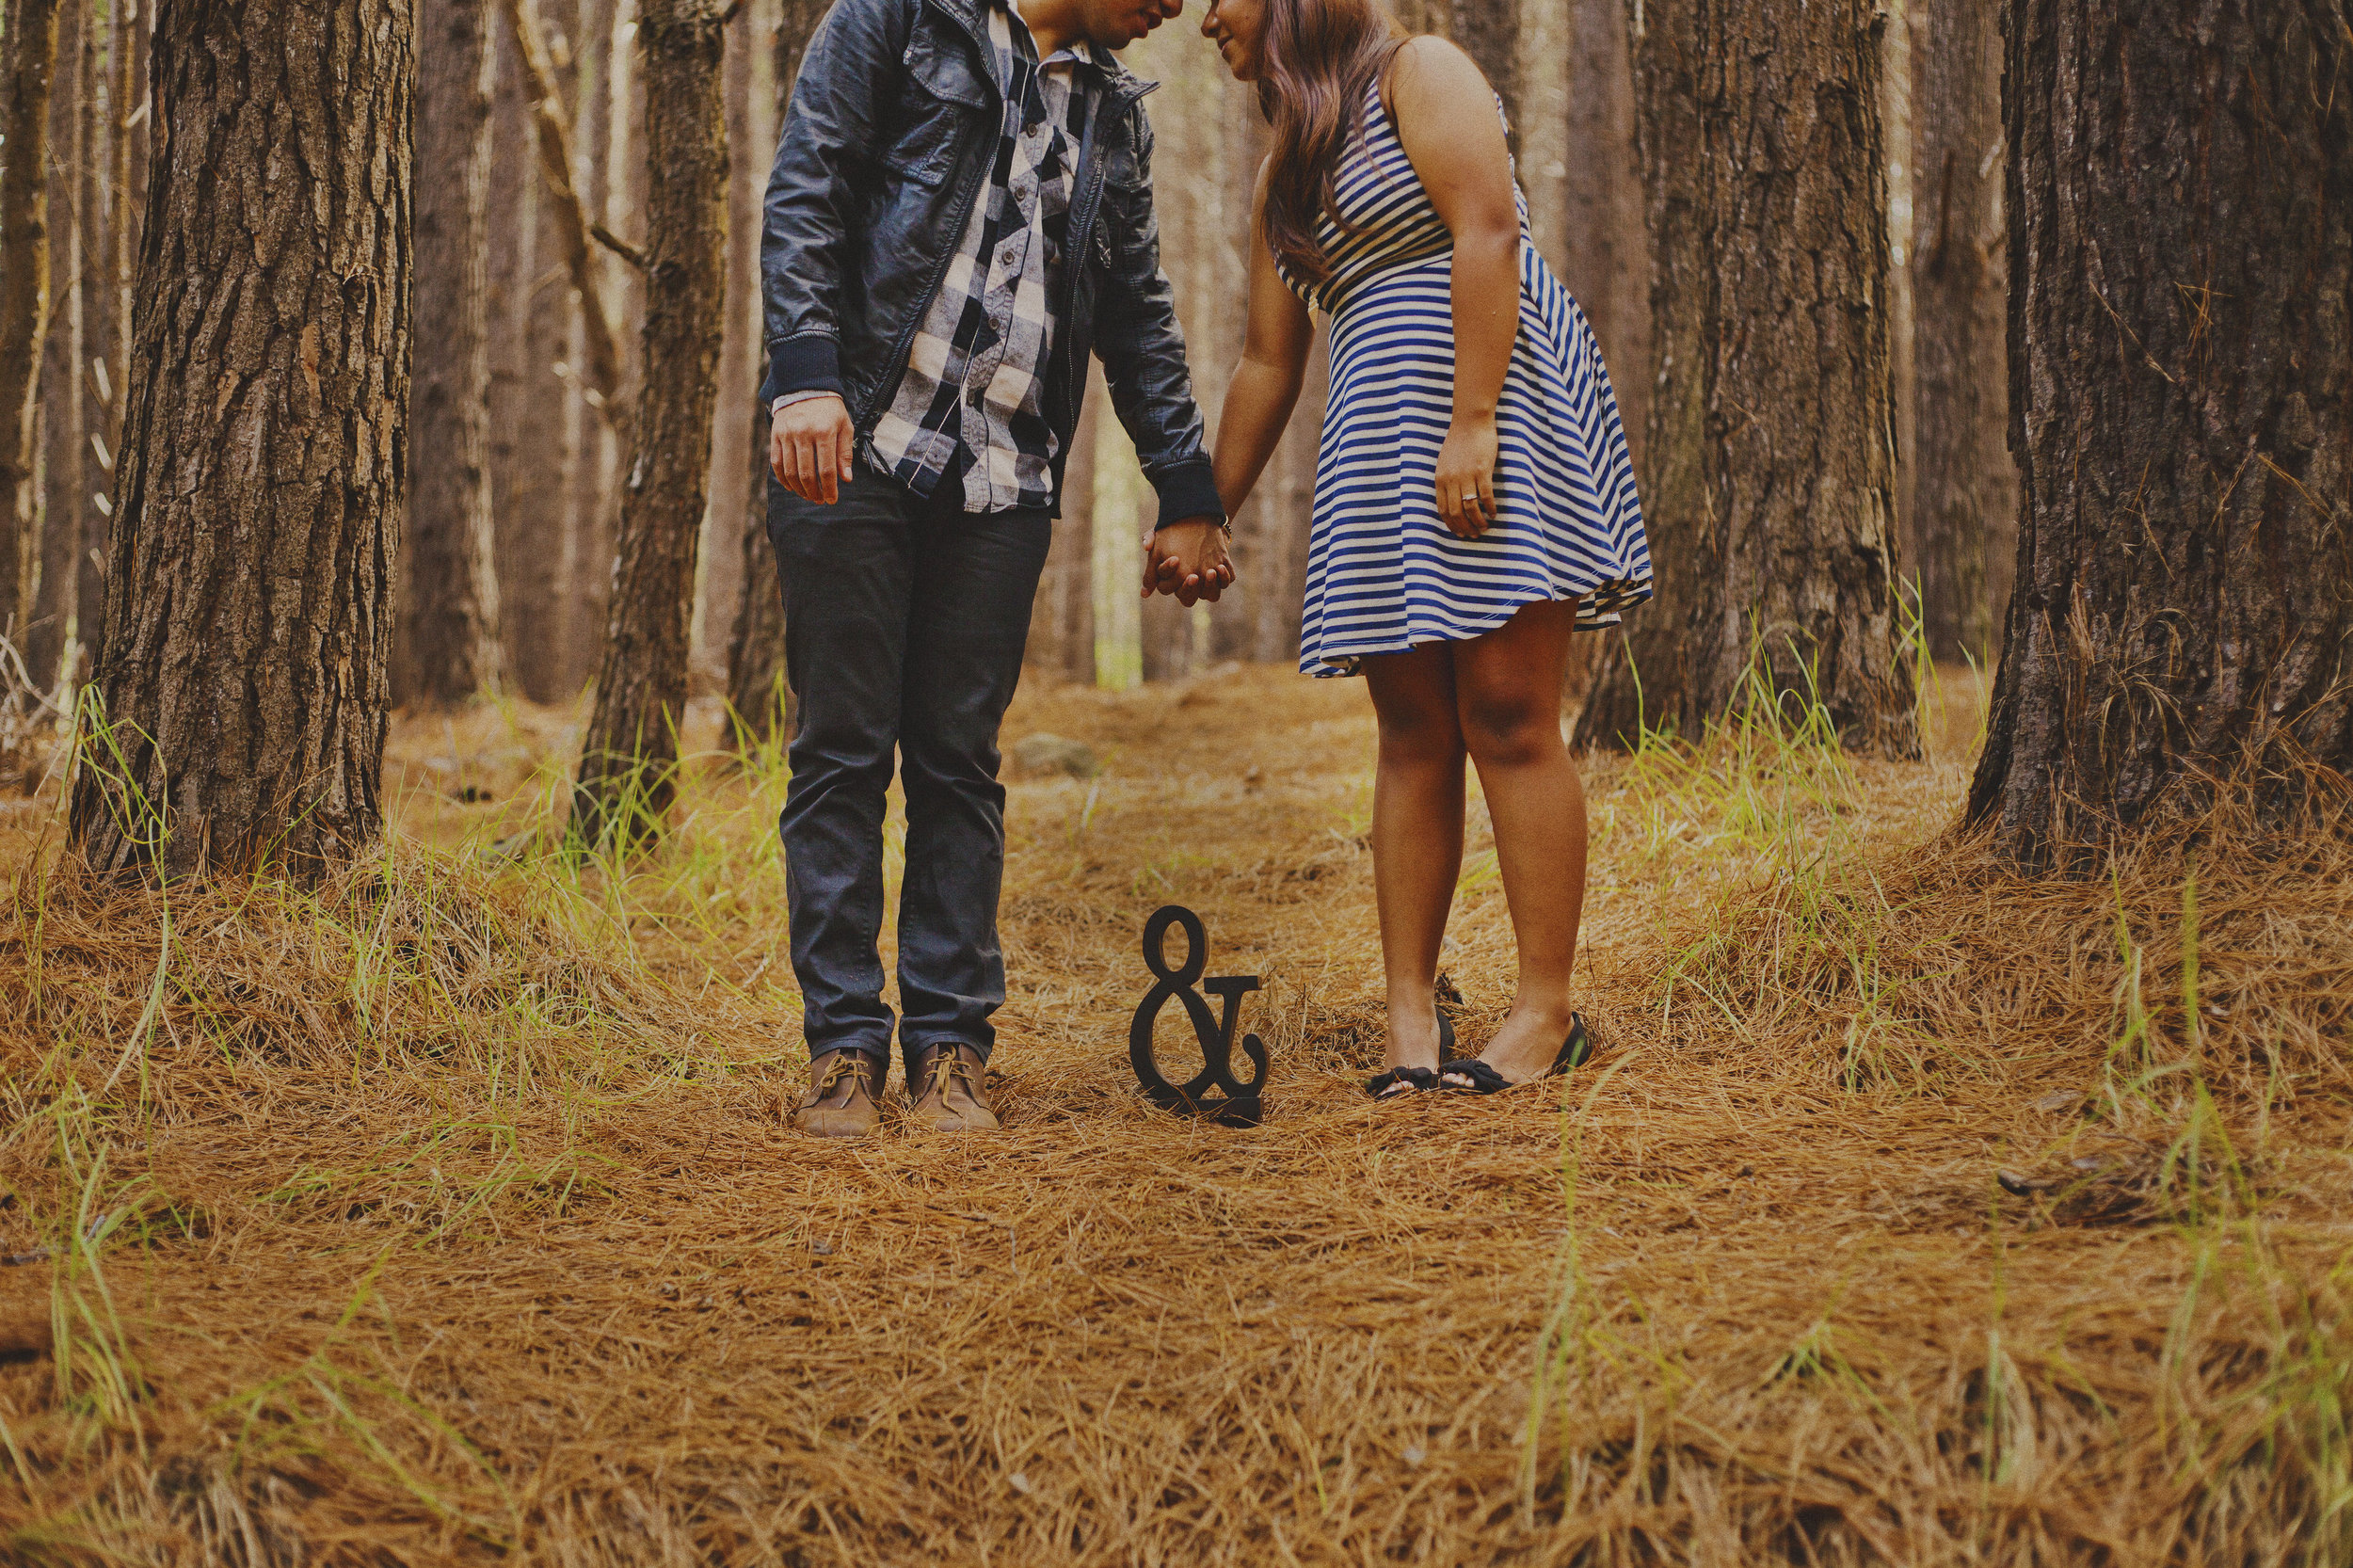 angie-diaz-photography-maui-upcountry-engagement-27.jpg